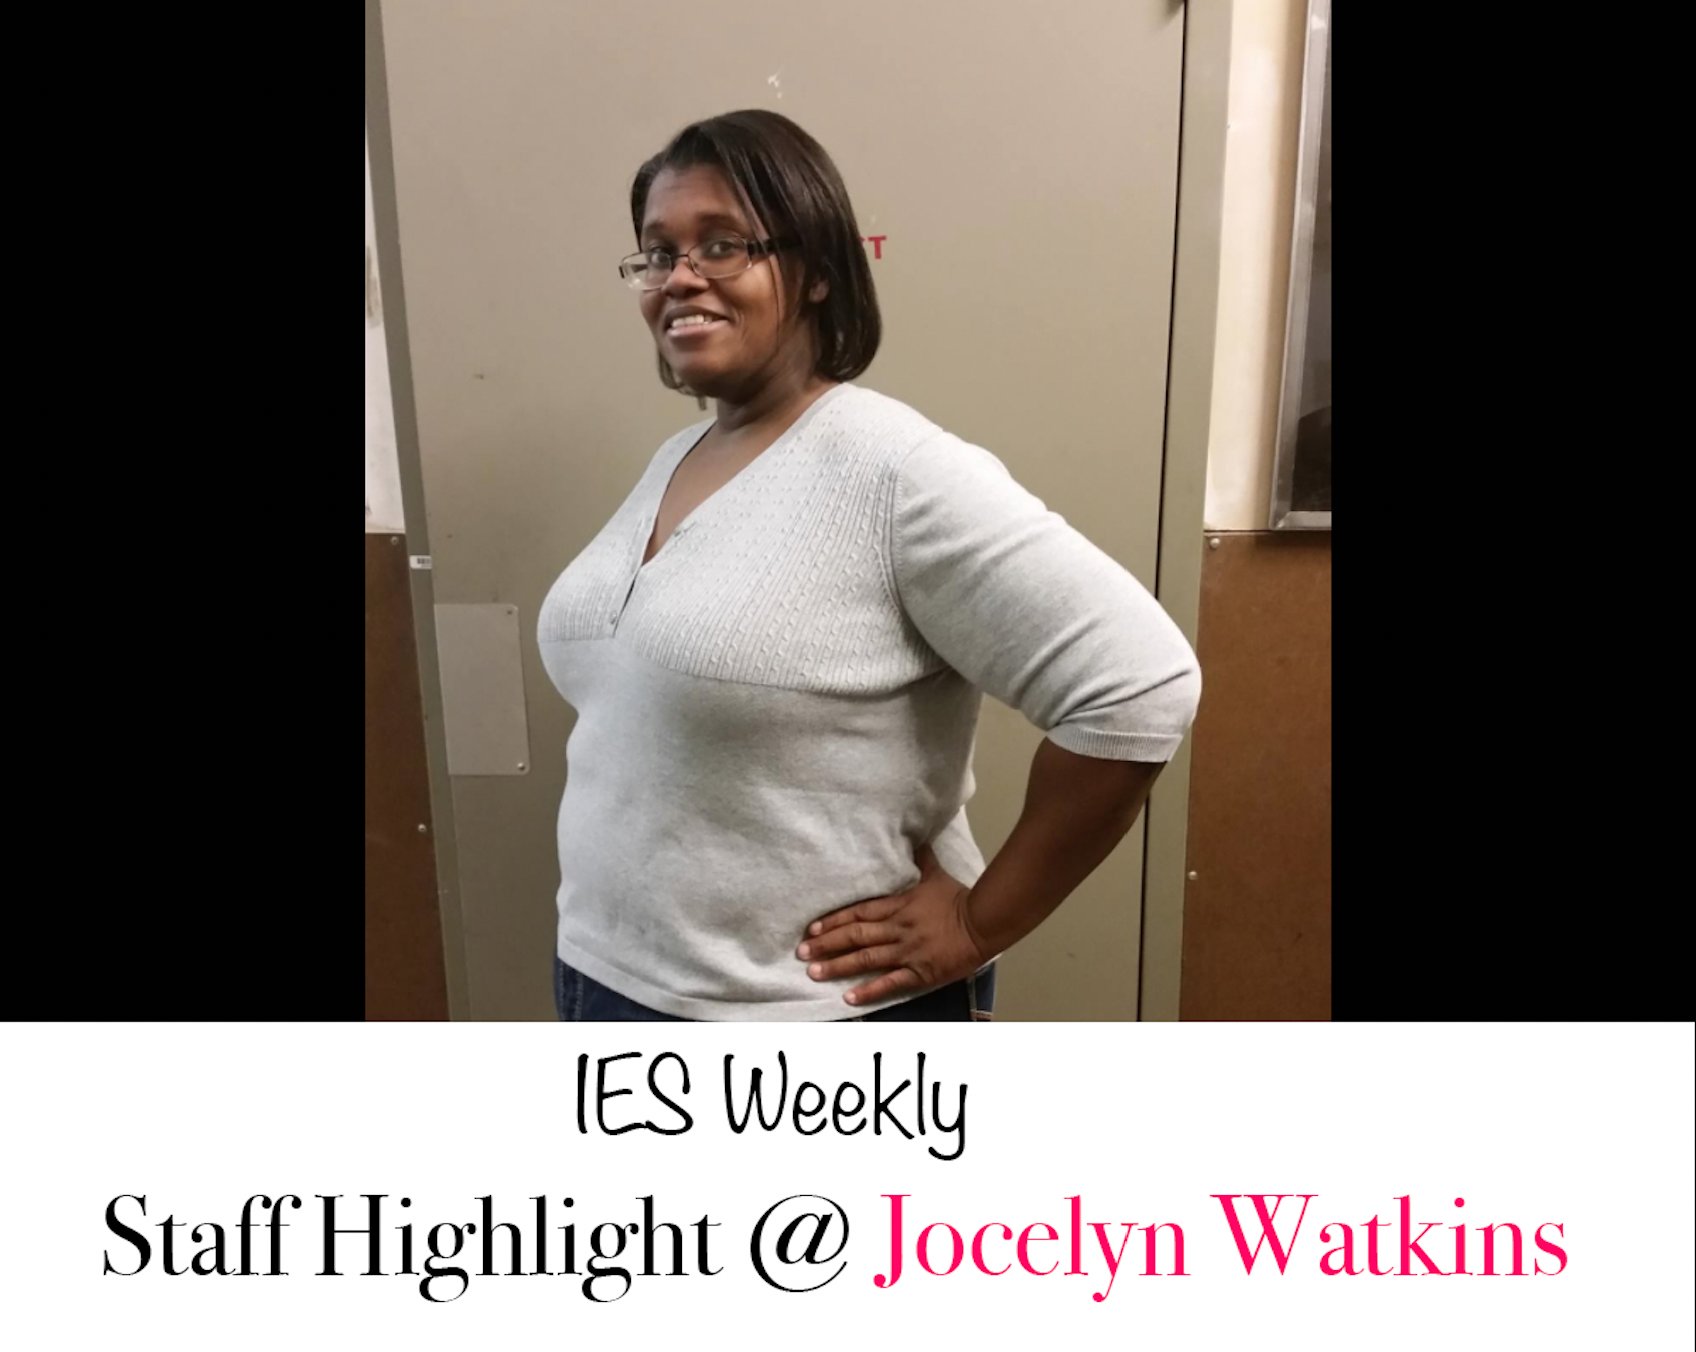 Staff Highlight Watkins